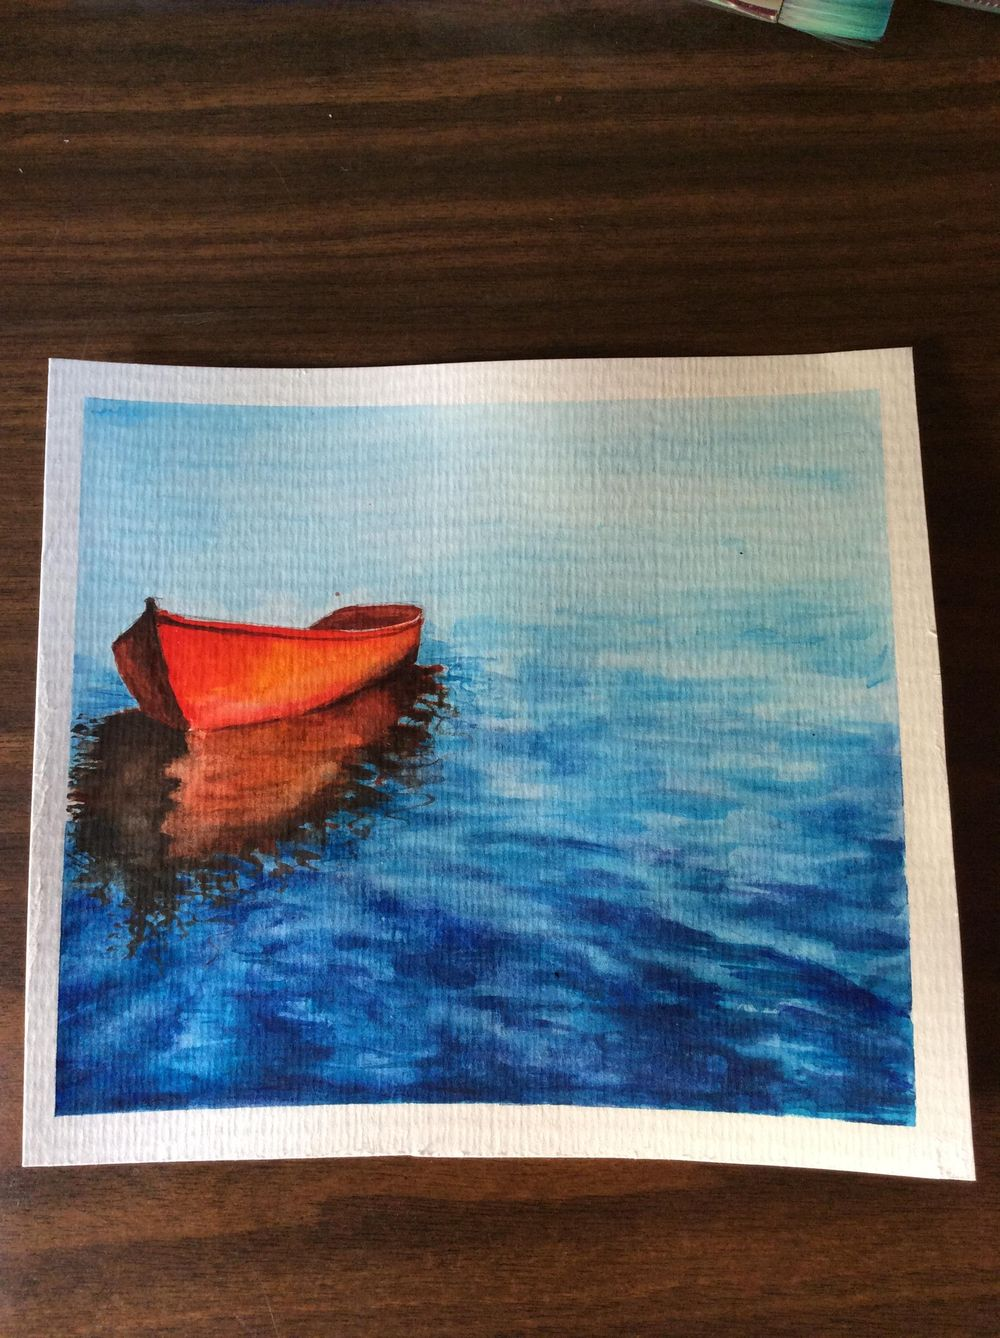 Seascape - image 2 - student project